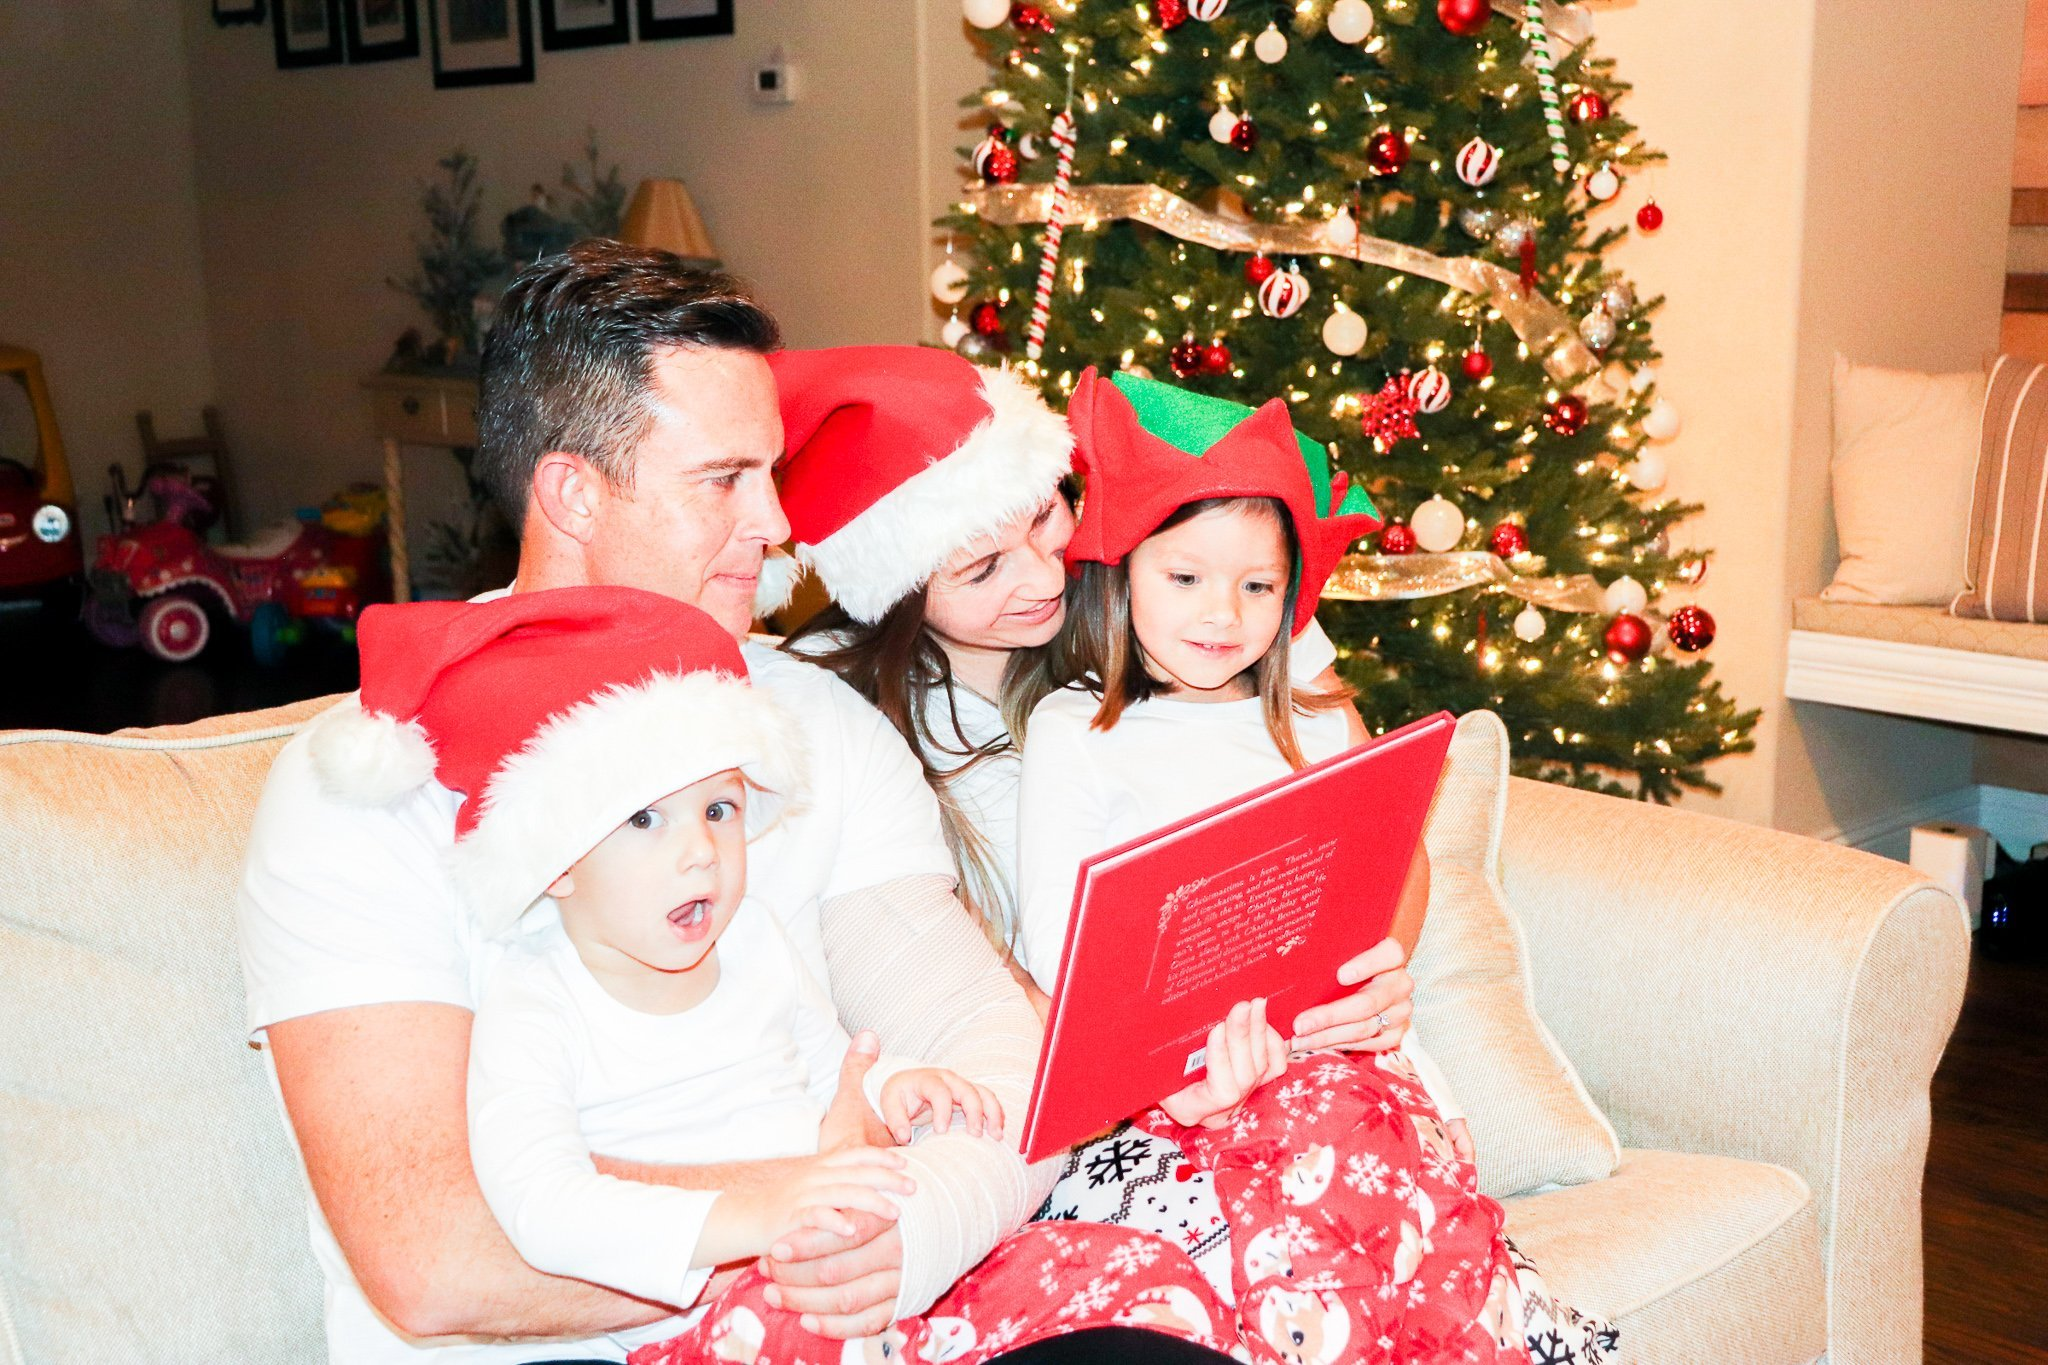 @confessions_of_parenting's cover photo for '5 Easy Ways to Give Back this Holiday Season - Confessions of Parenting'